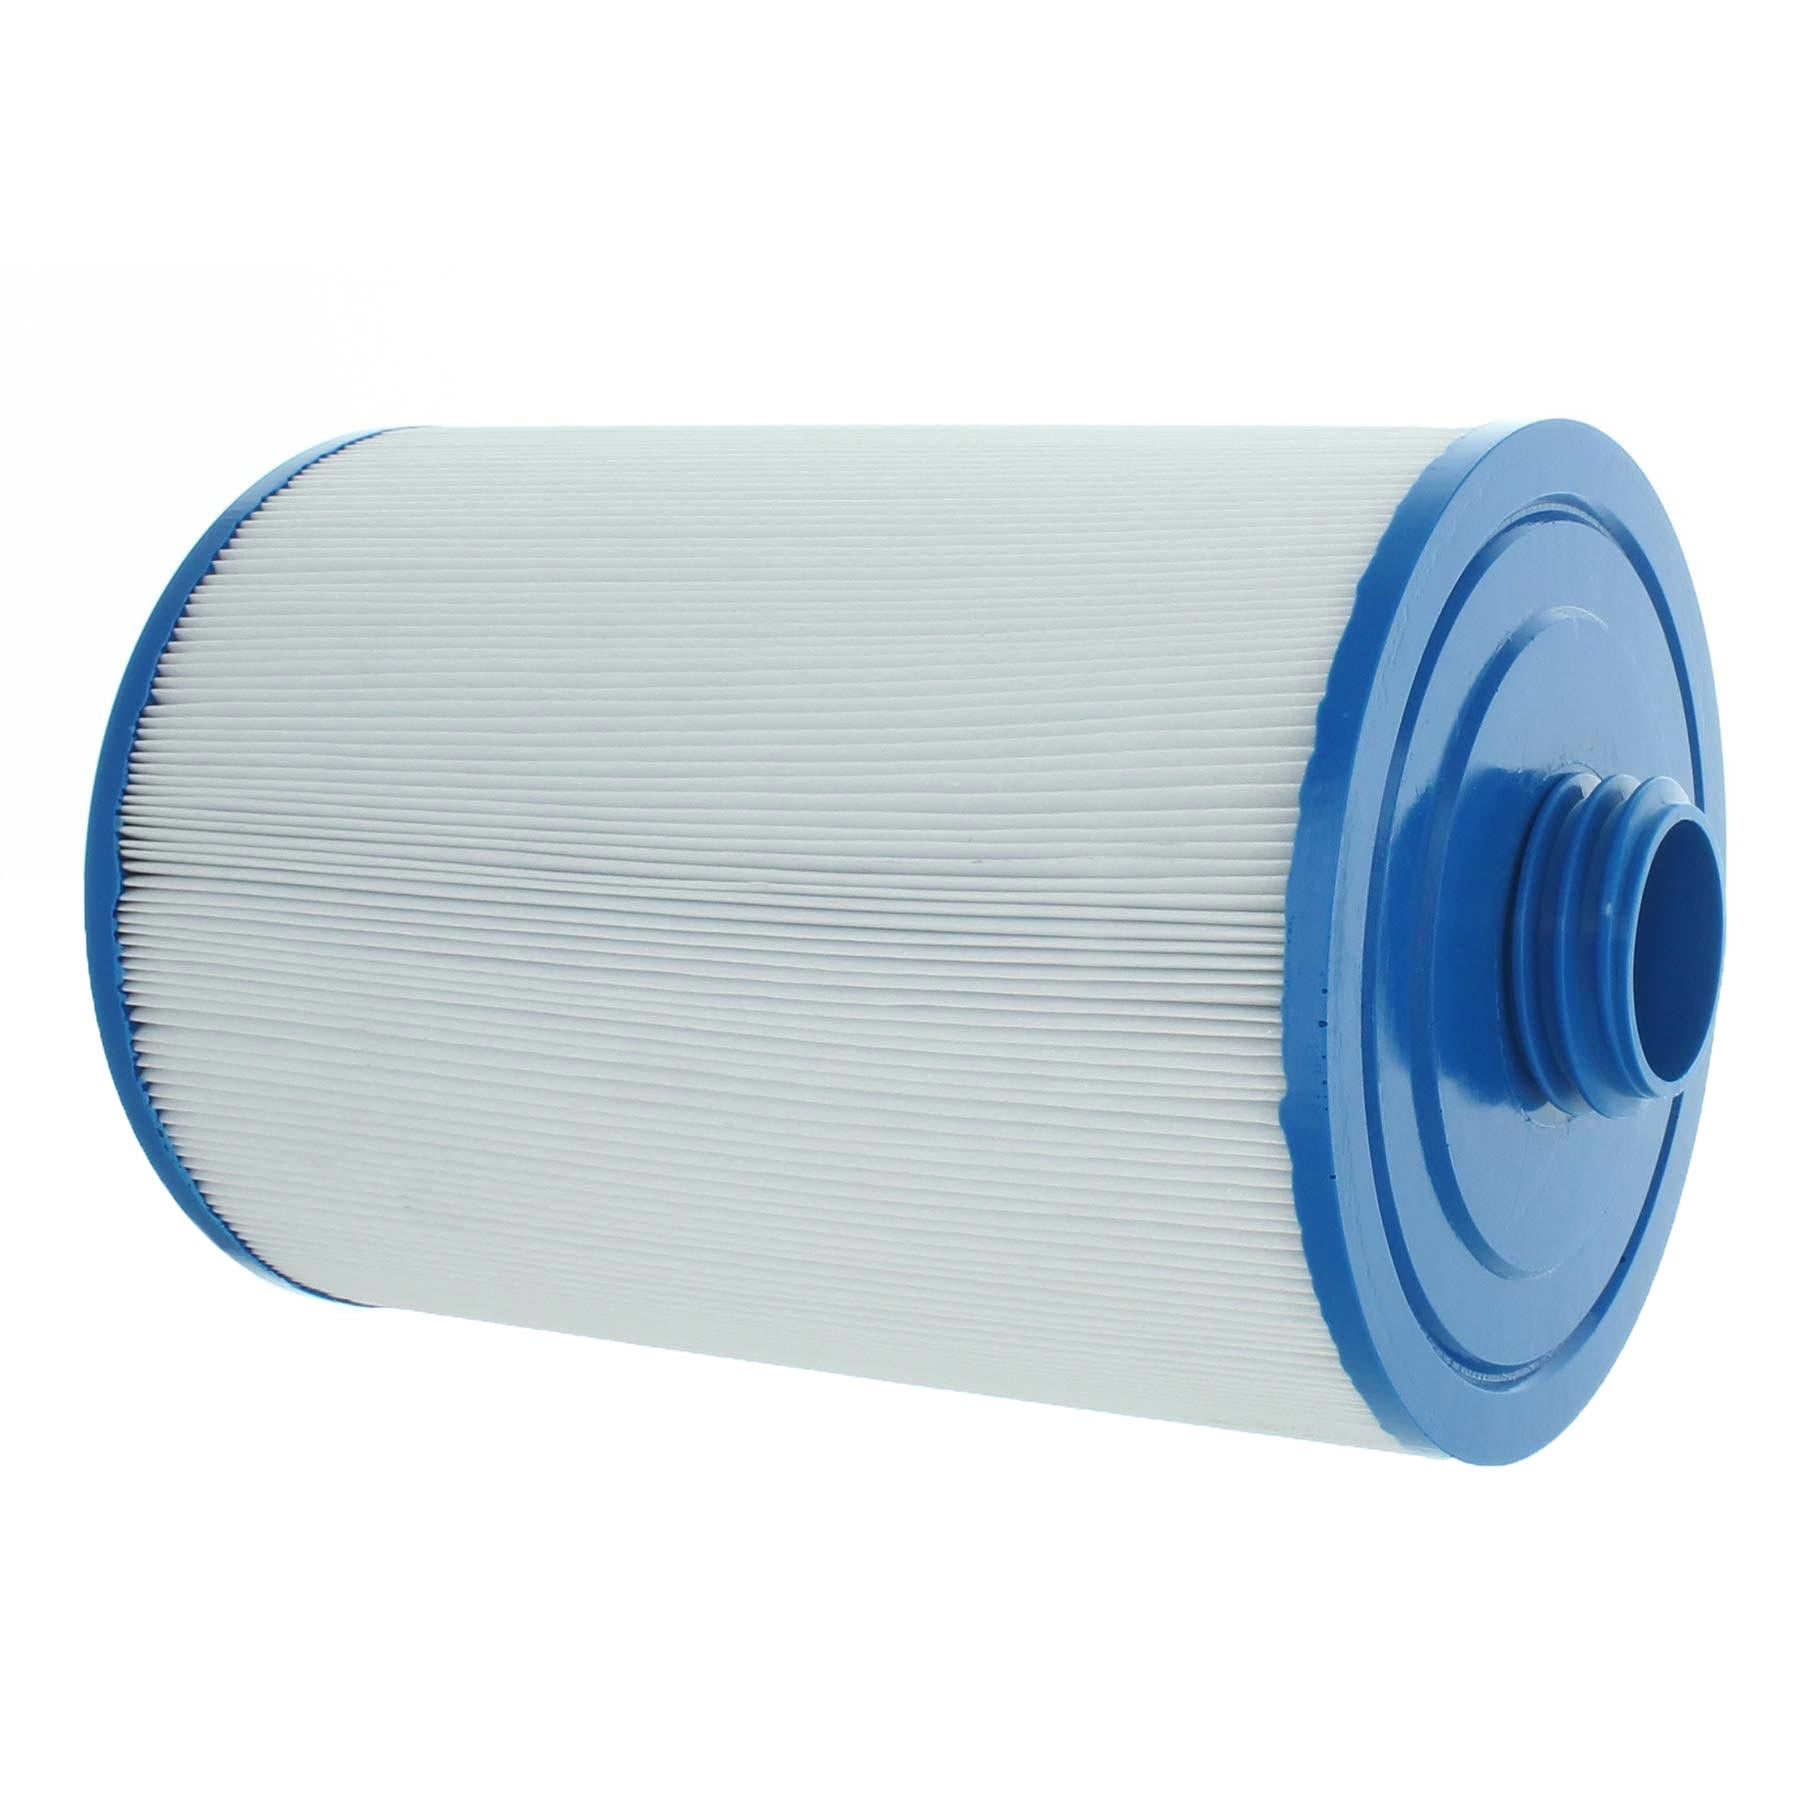 Replaces Unicel 6CH-940, Pleatco PWW50P3 • Hot Tub & Spa Filter Cartridge-Filter Cartridge-FilterDeal.com